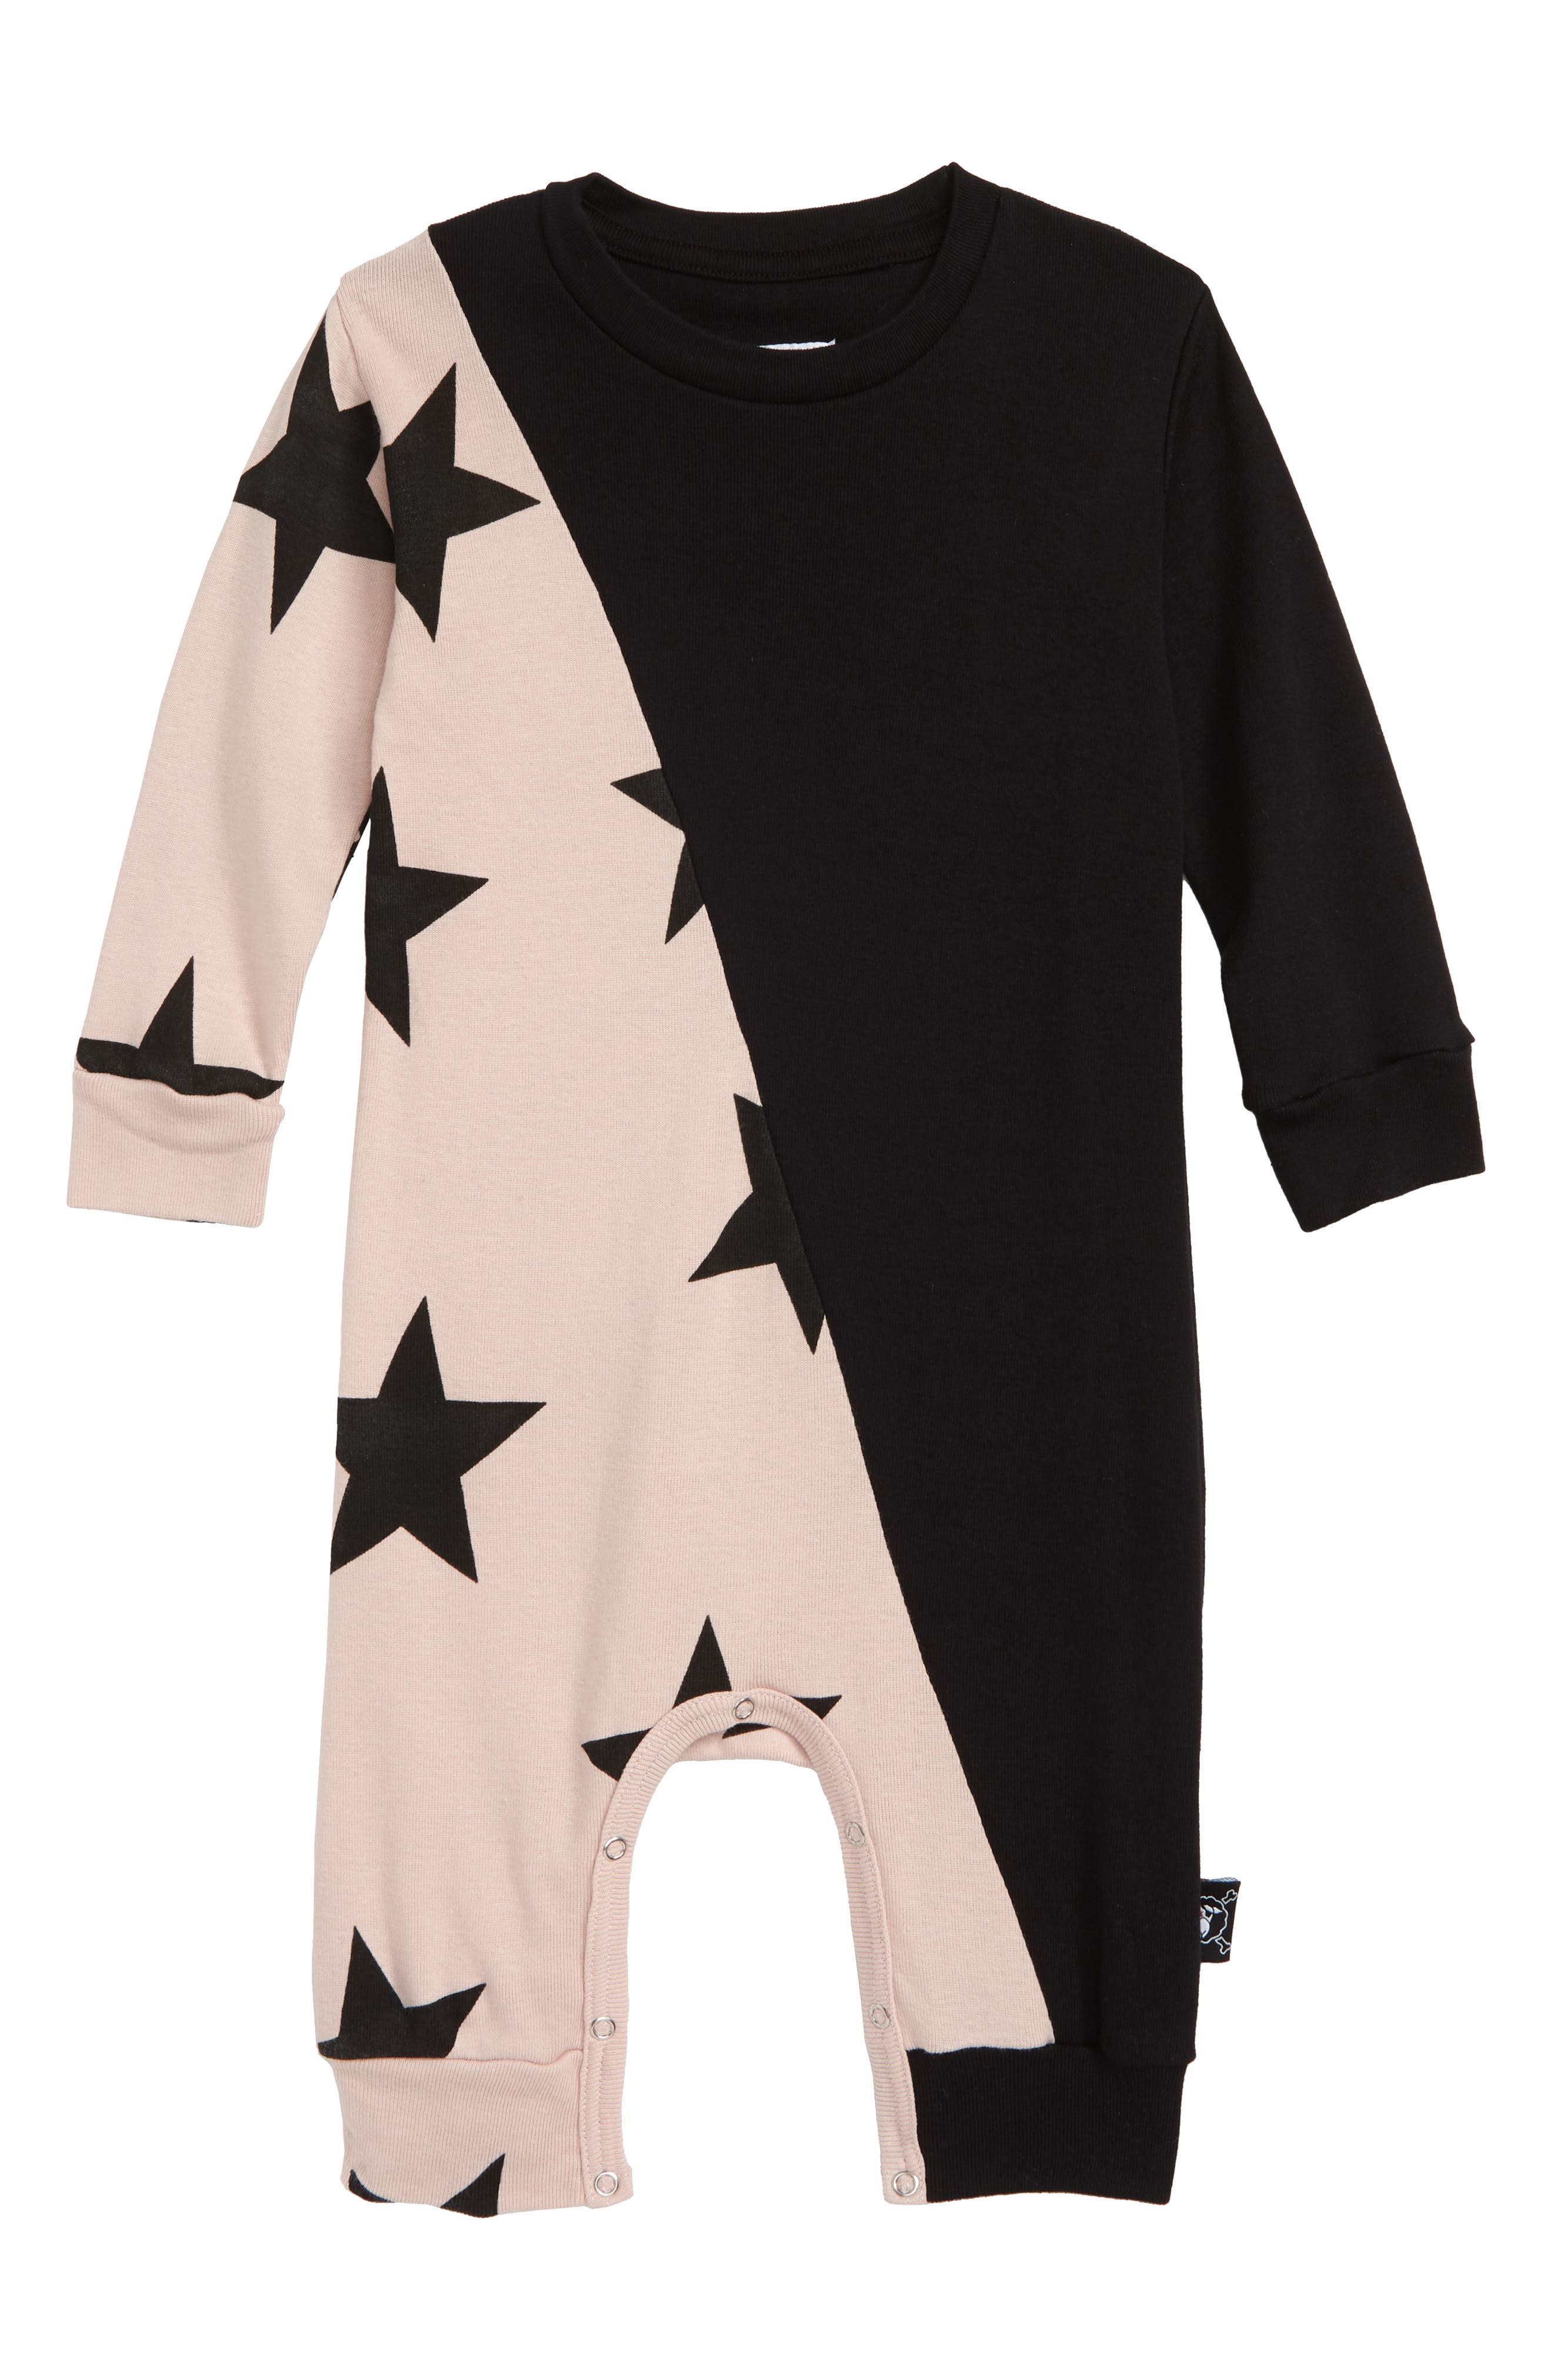 1/2 and 1/2 Star Romper,                             Main thumbnail 1, color,                             650